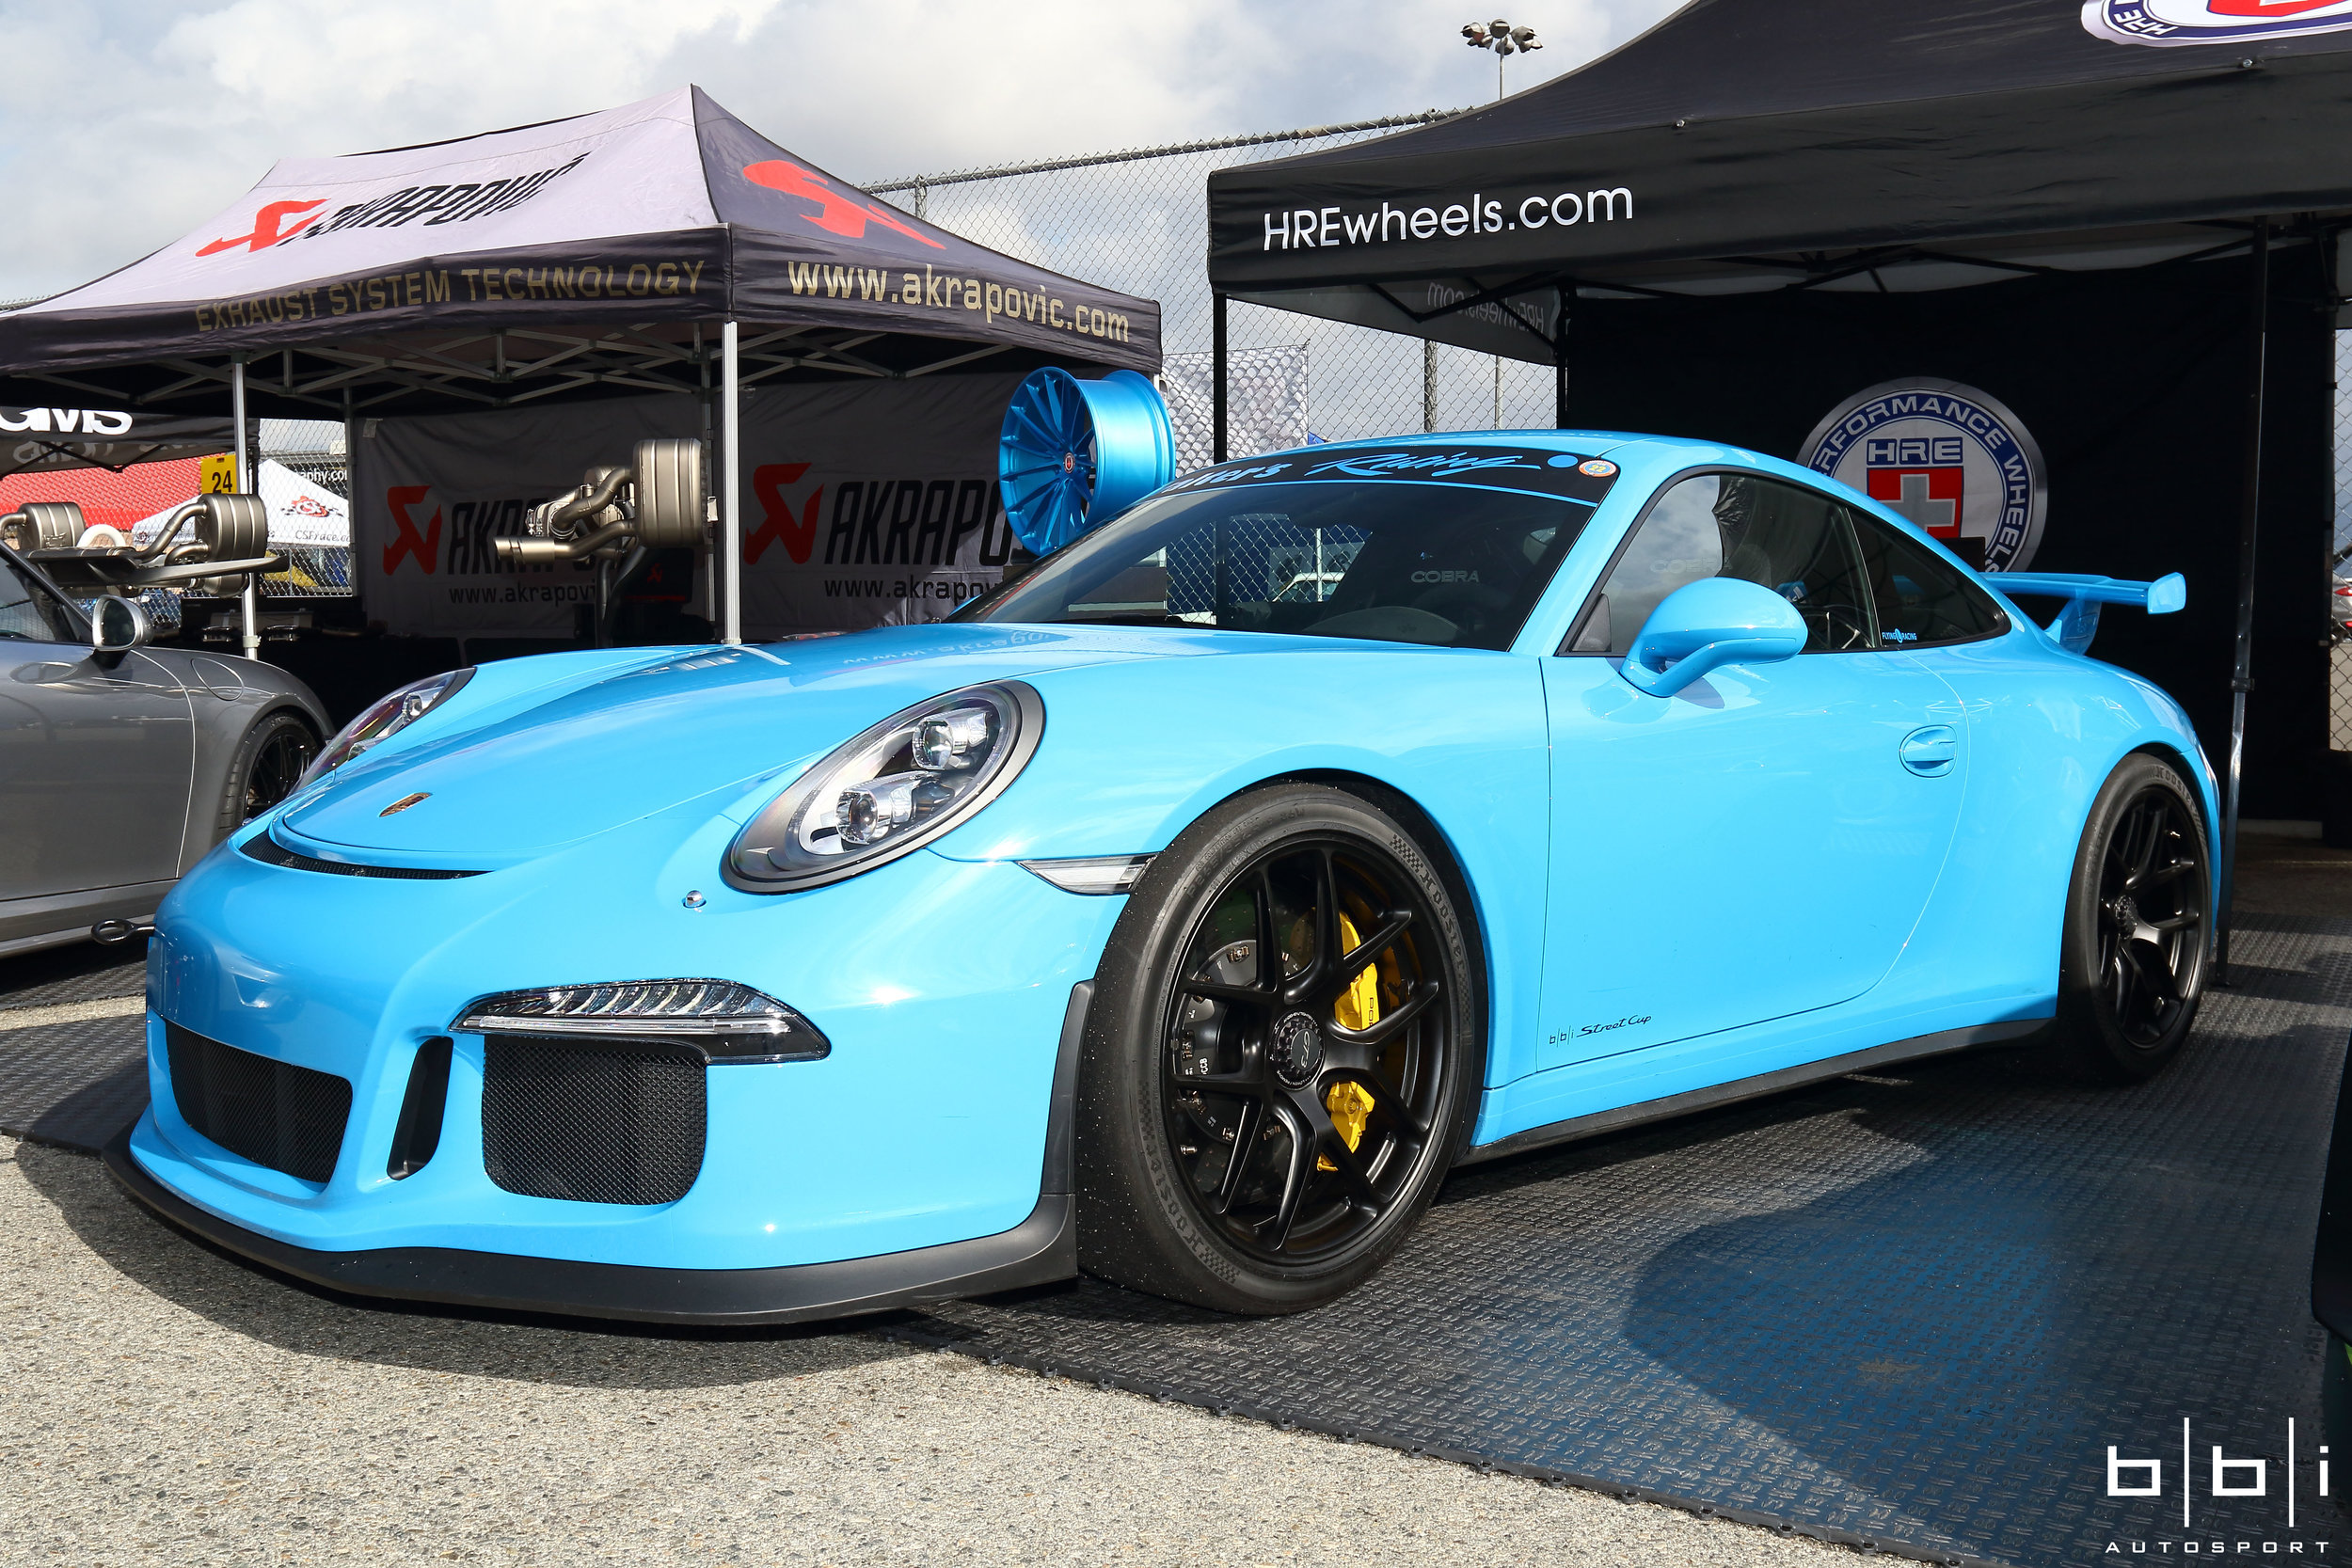 Flying L Racing's Mexico Blue Porsche 991 GT3 with Complete BBi StreetCup Roll Bar, Suspension,Exhaust and HRE Wheels Track Pacakge